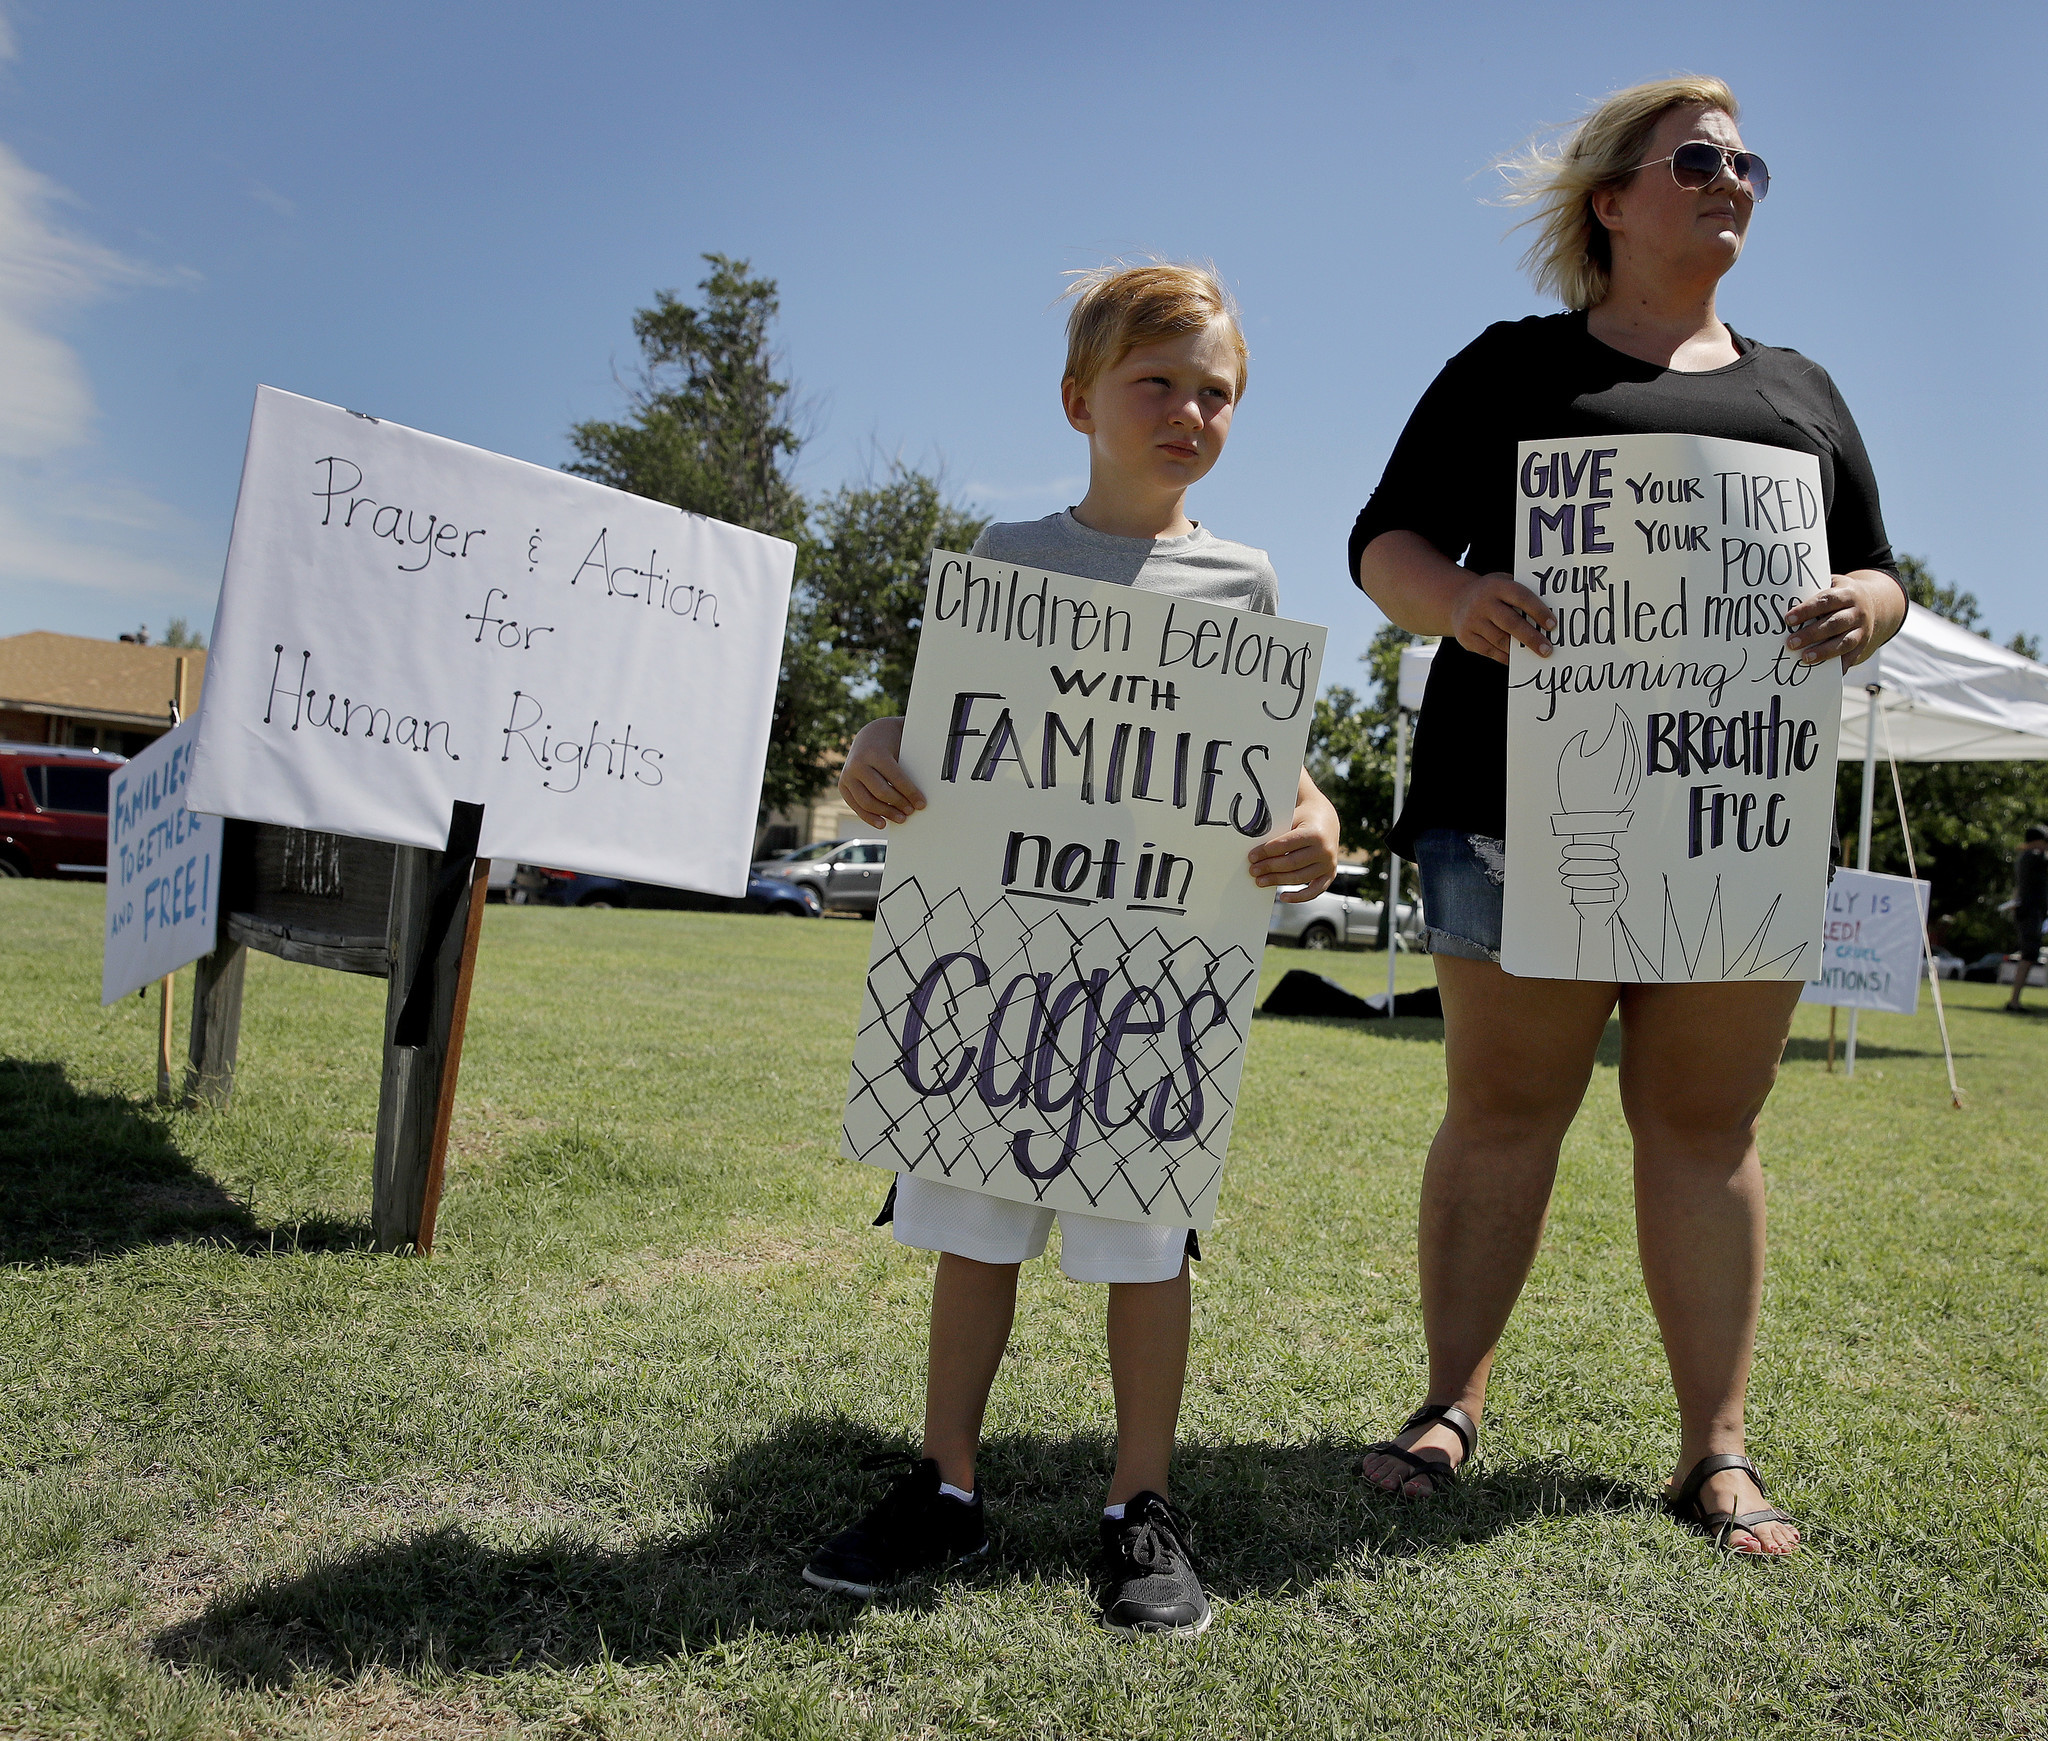 Bennett Heeke, age 5, and his mother Sarah Doll Heeke hold signs at a rally protesting U.S. immigrat